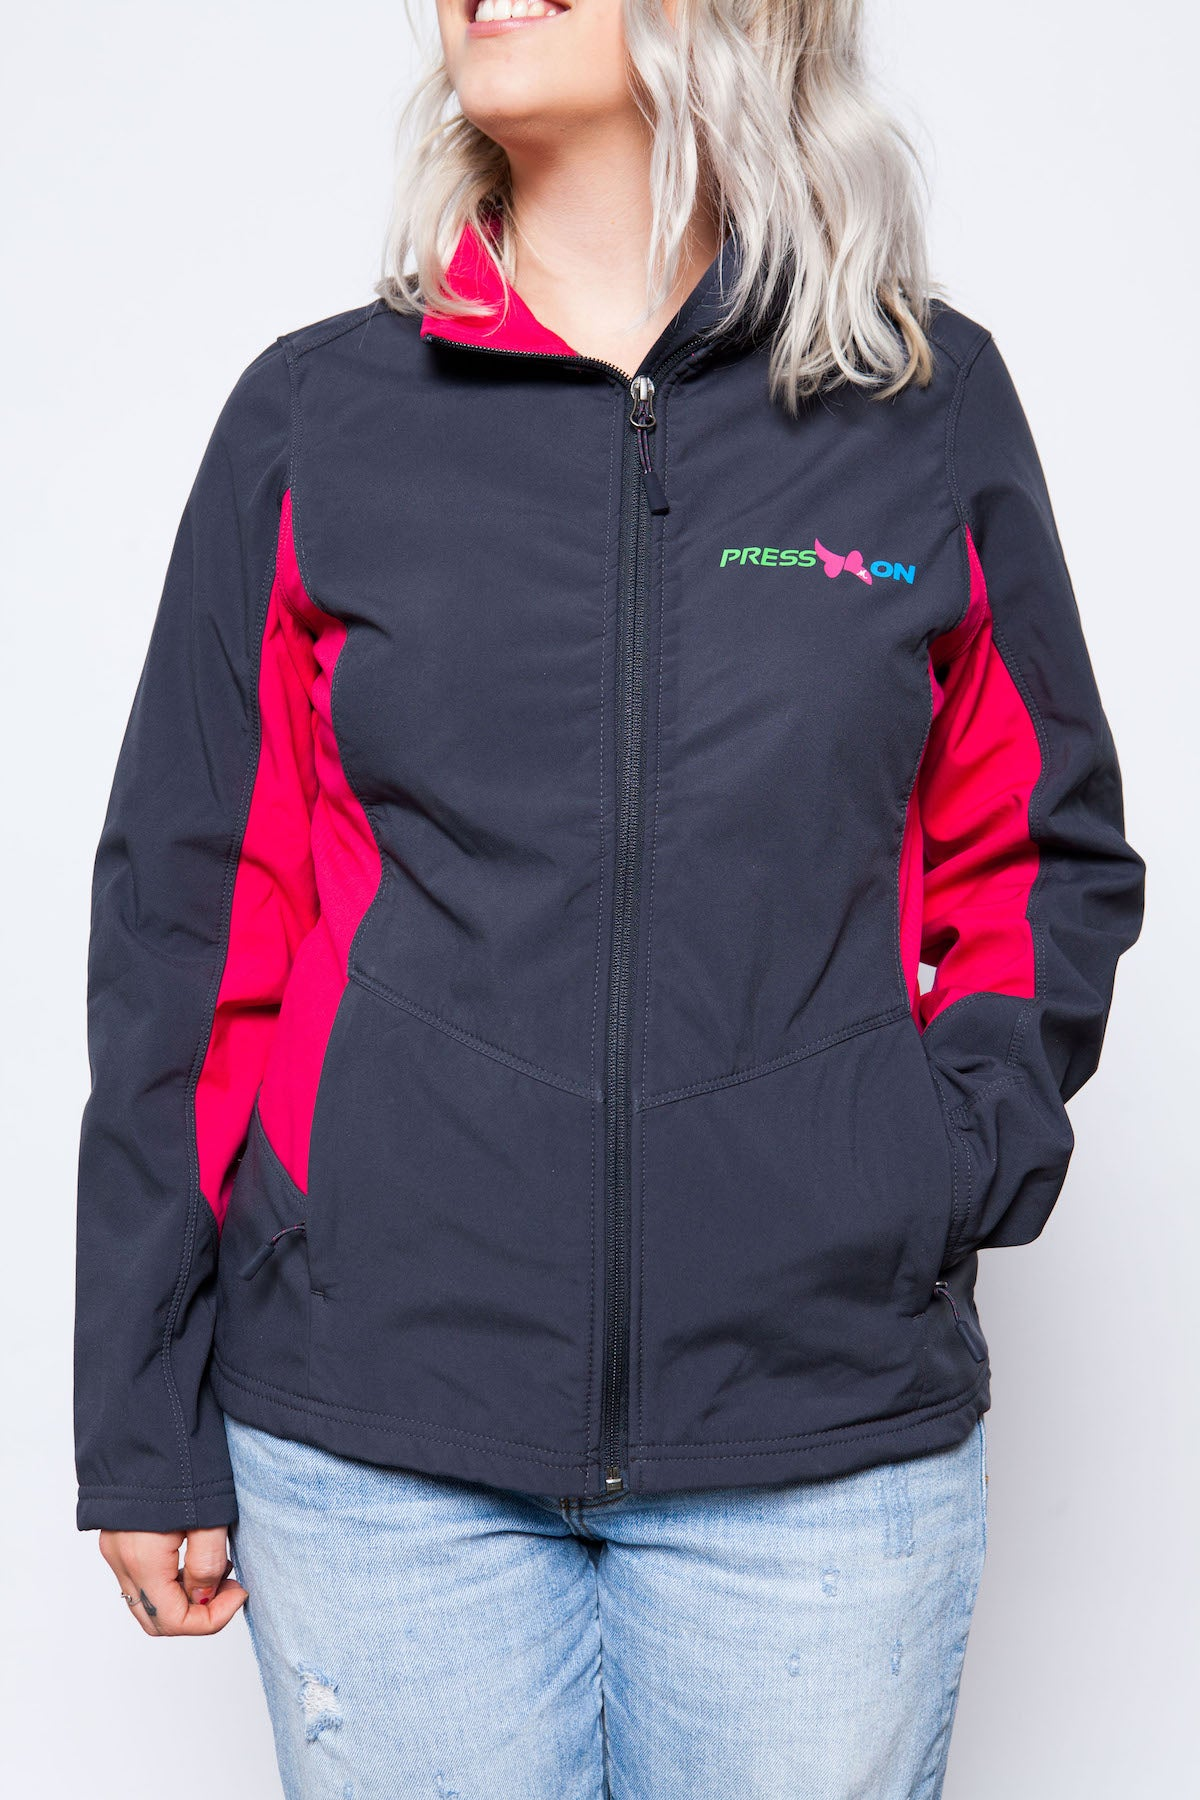 Press-On Ladies Core Colorblock Soft Shell Jacket - MandisaOfficial